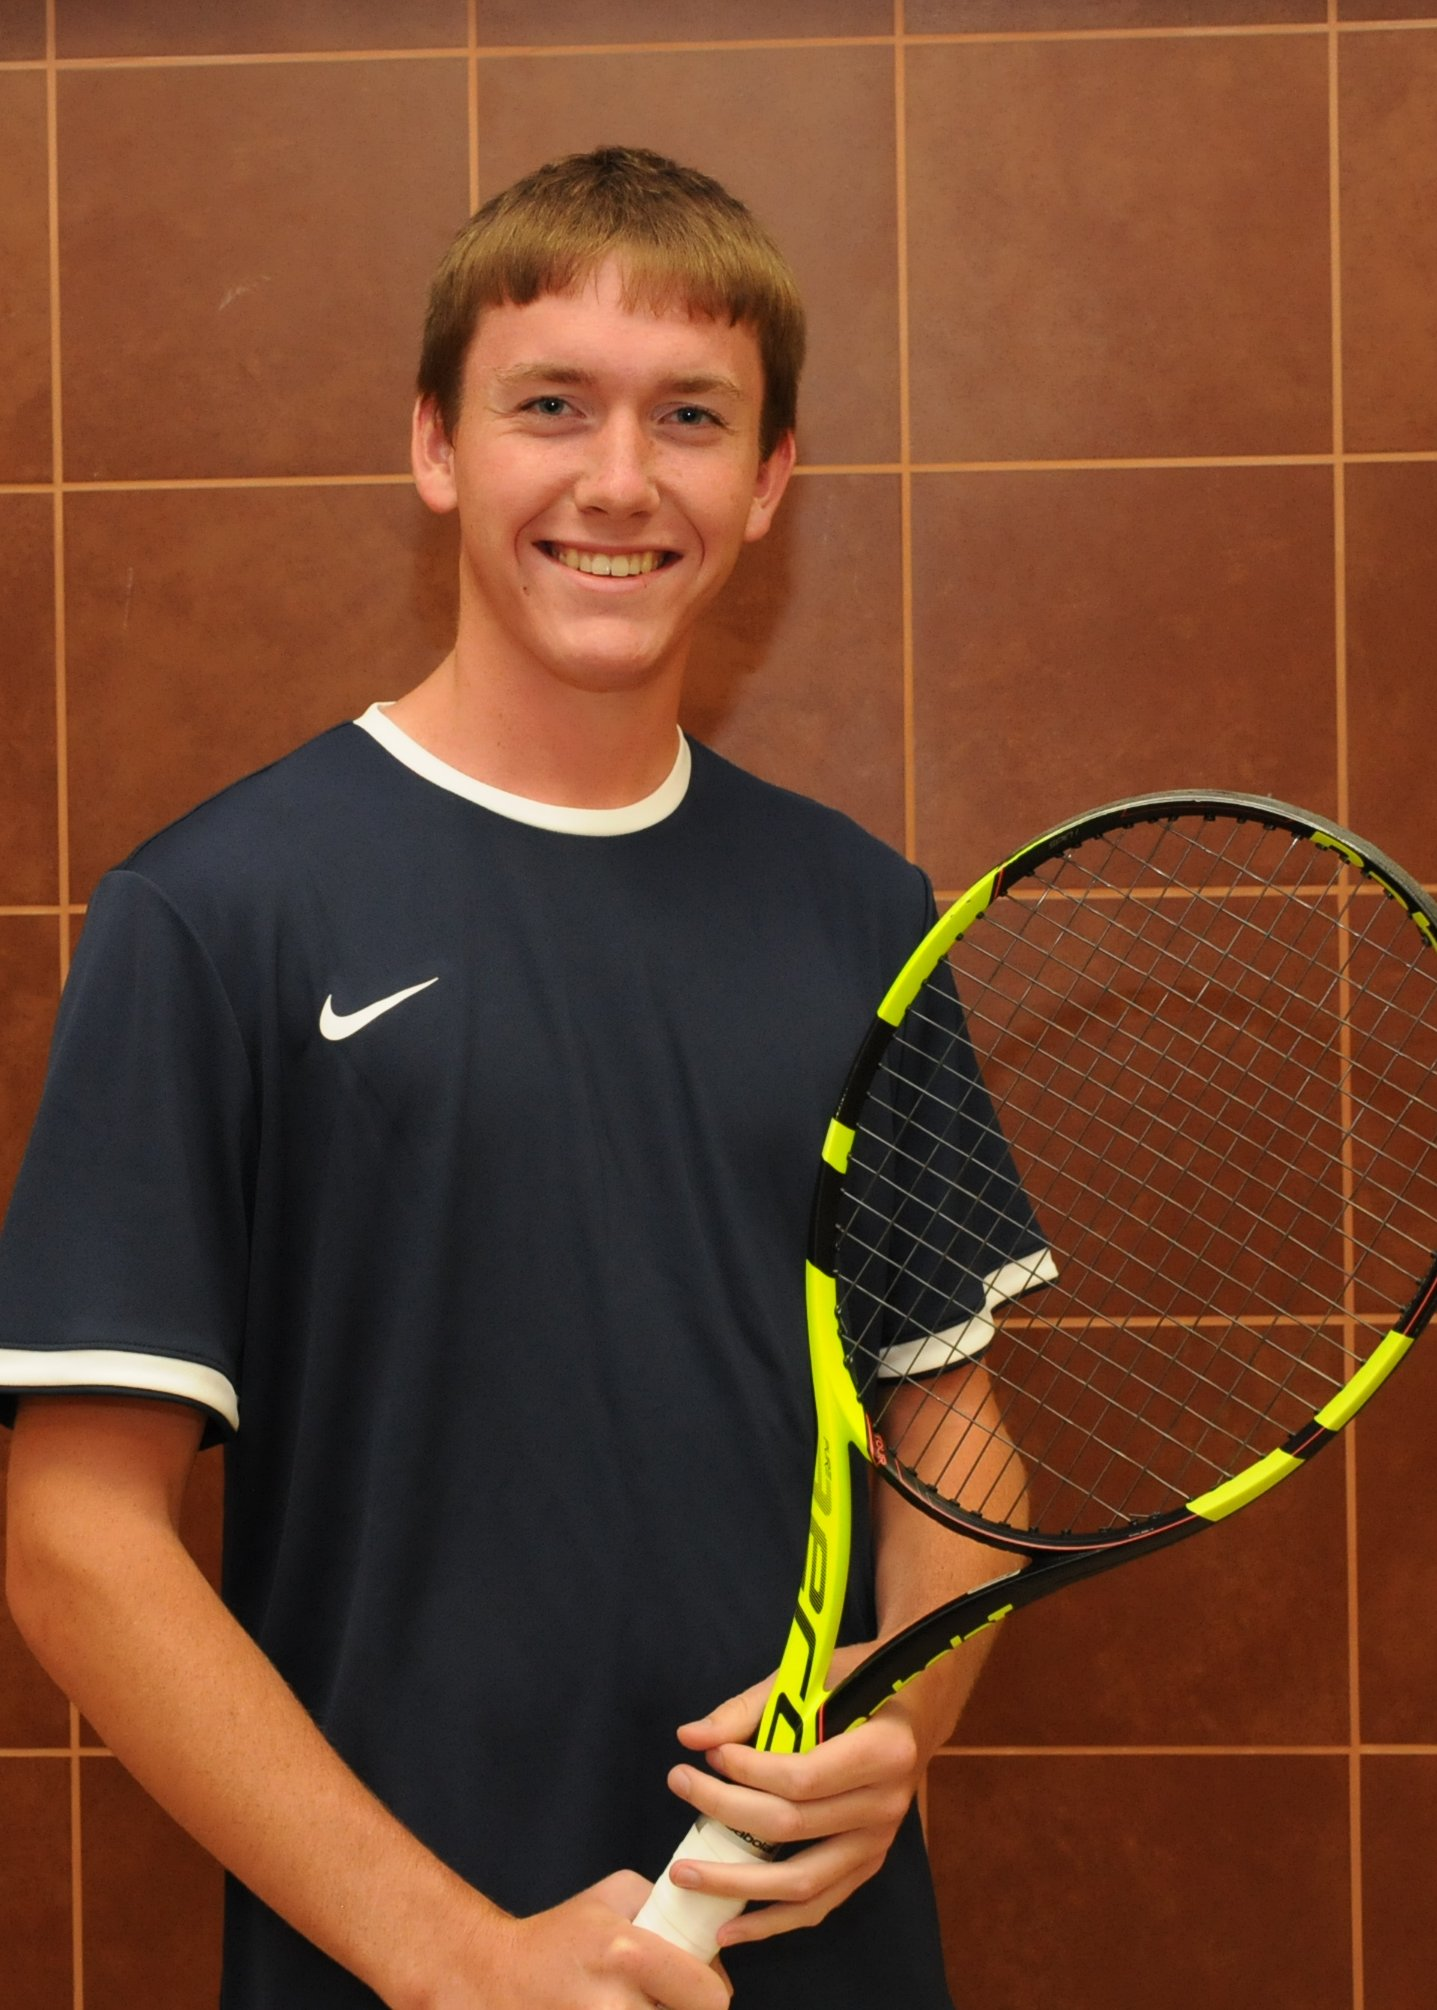 Senior Cory Evans Starts Year With Win at #1 Singles